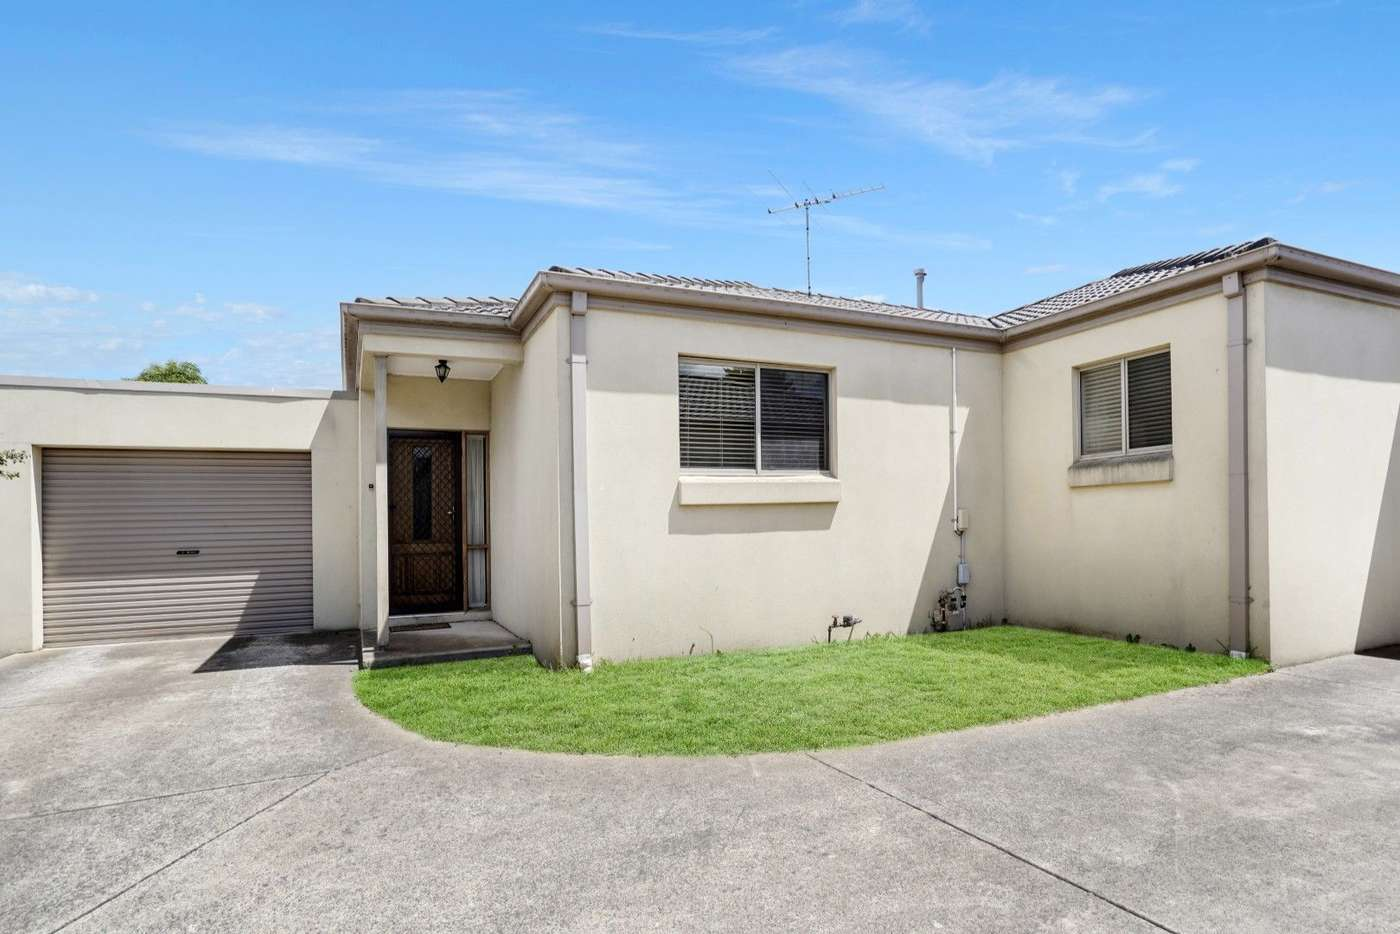 Main view of Homely unit listing, 3/22 Allan street, Noble Park VIC 3174